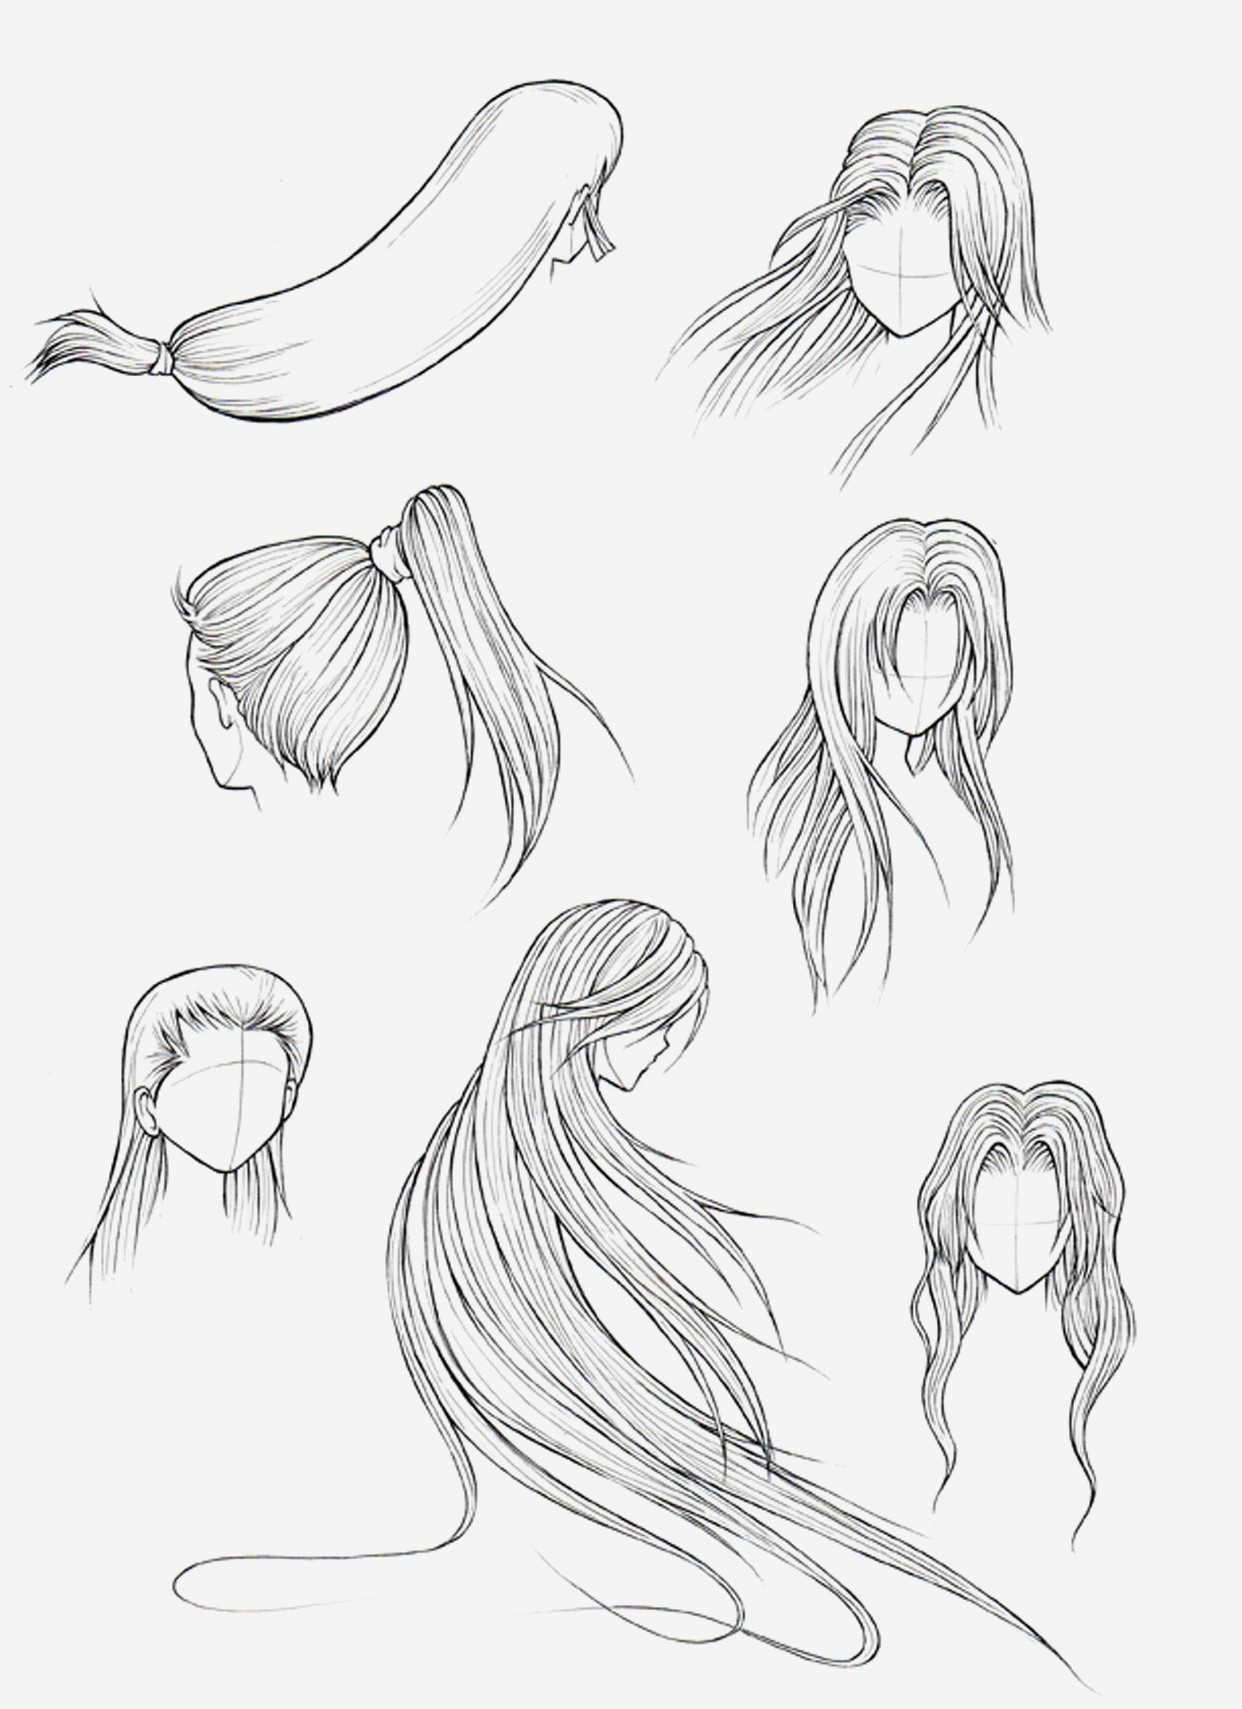 Anime Hairstyles Drawing At Getdrawings